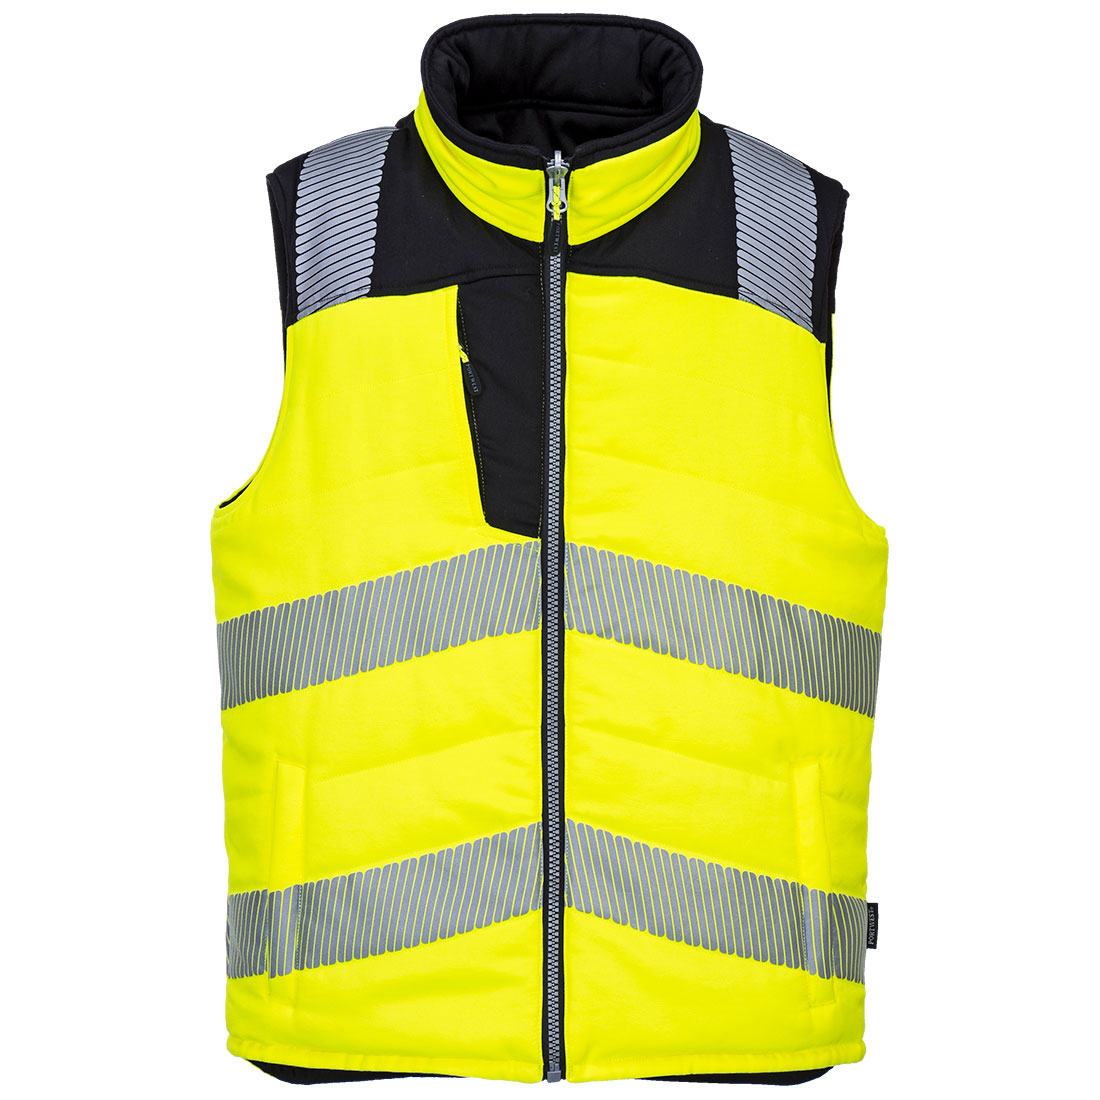 PW3 Hi-Vis Reversible Bodywarmer Yellow/Black Medium